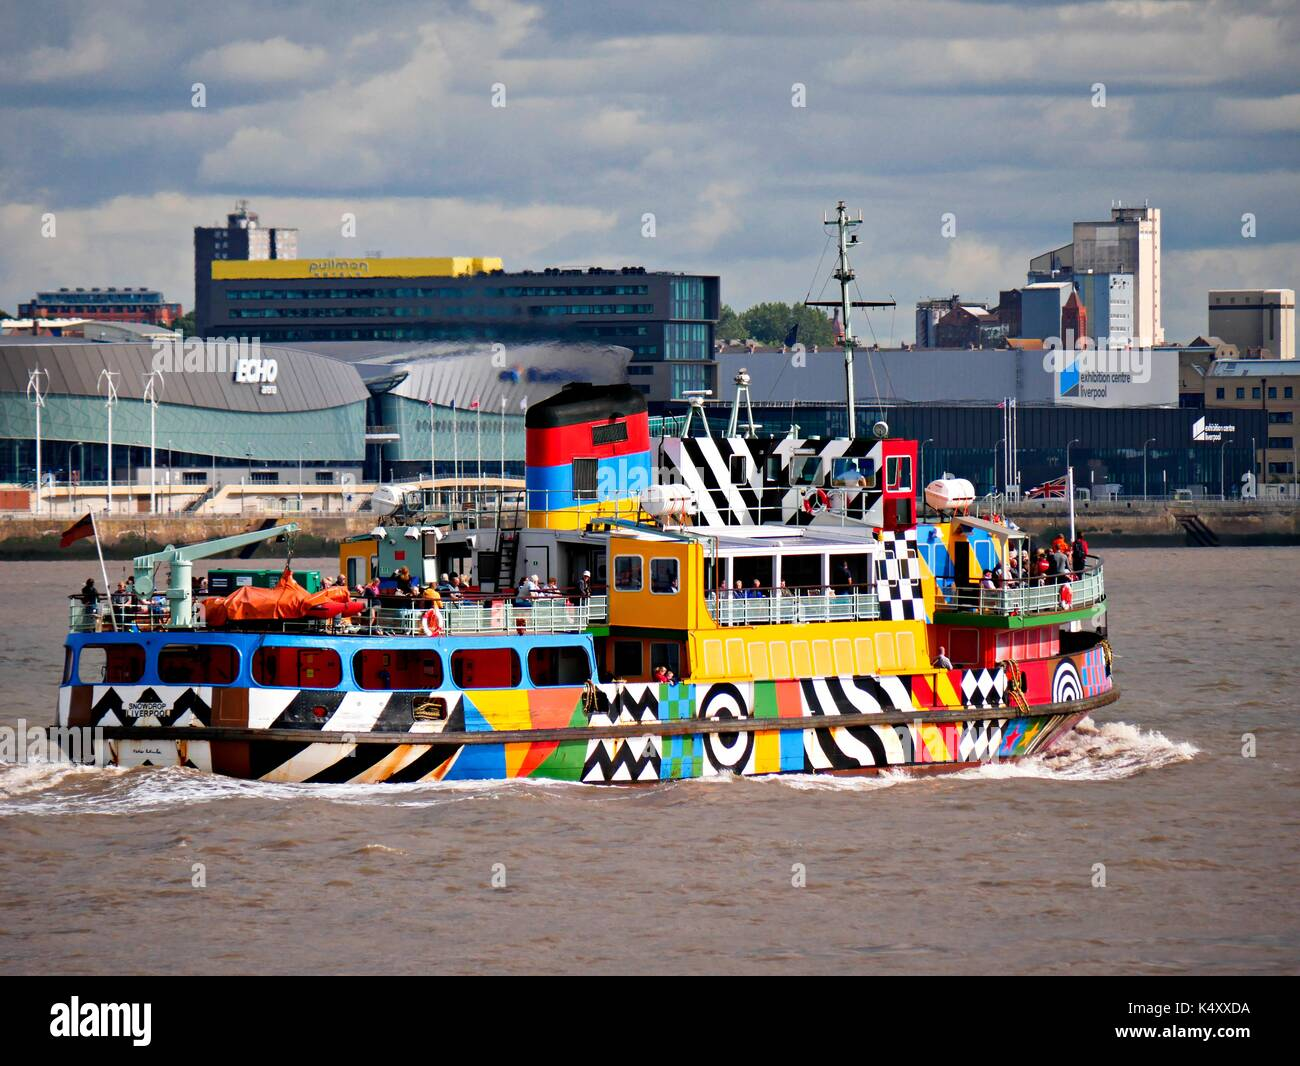 Mersey Ferry in dazzle livery against the backdrop of the Liverpool Arena and Exhibition Centre. - Stock Image